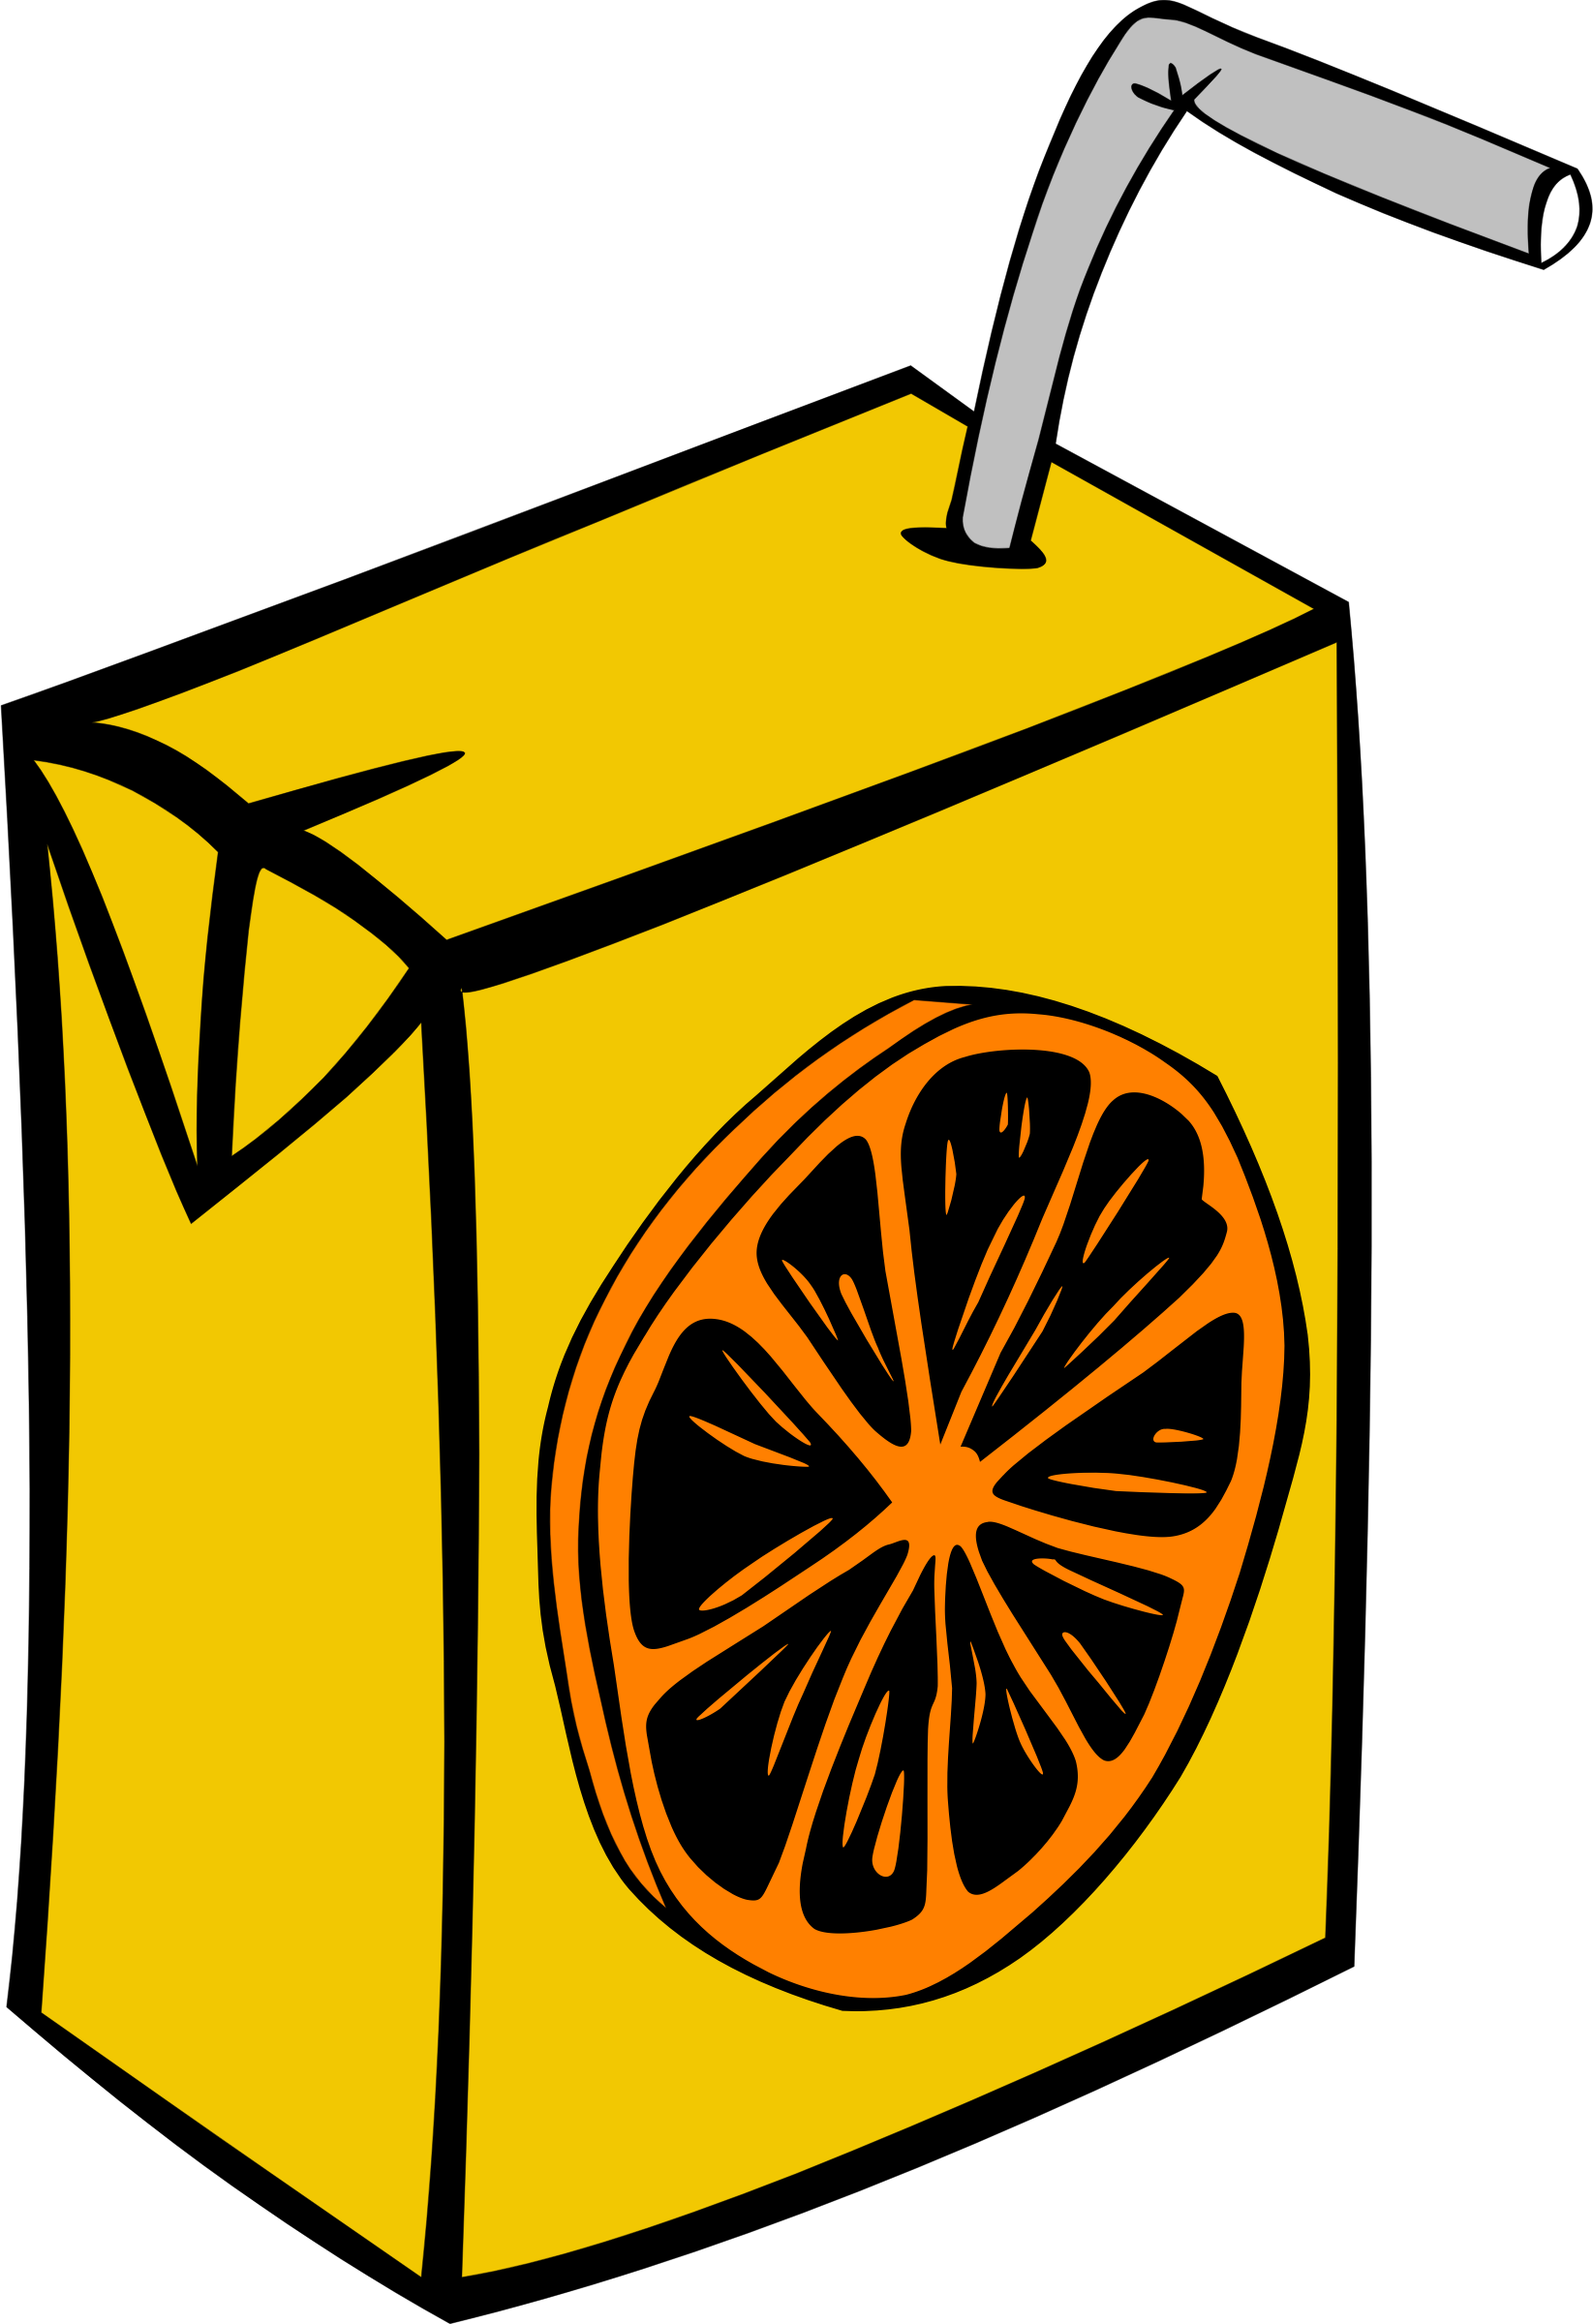 image library library Fast food juice orange. Drinks clipart